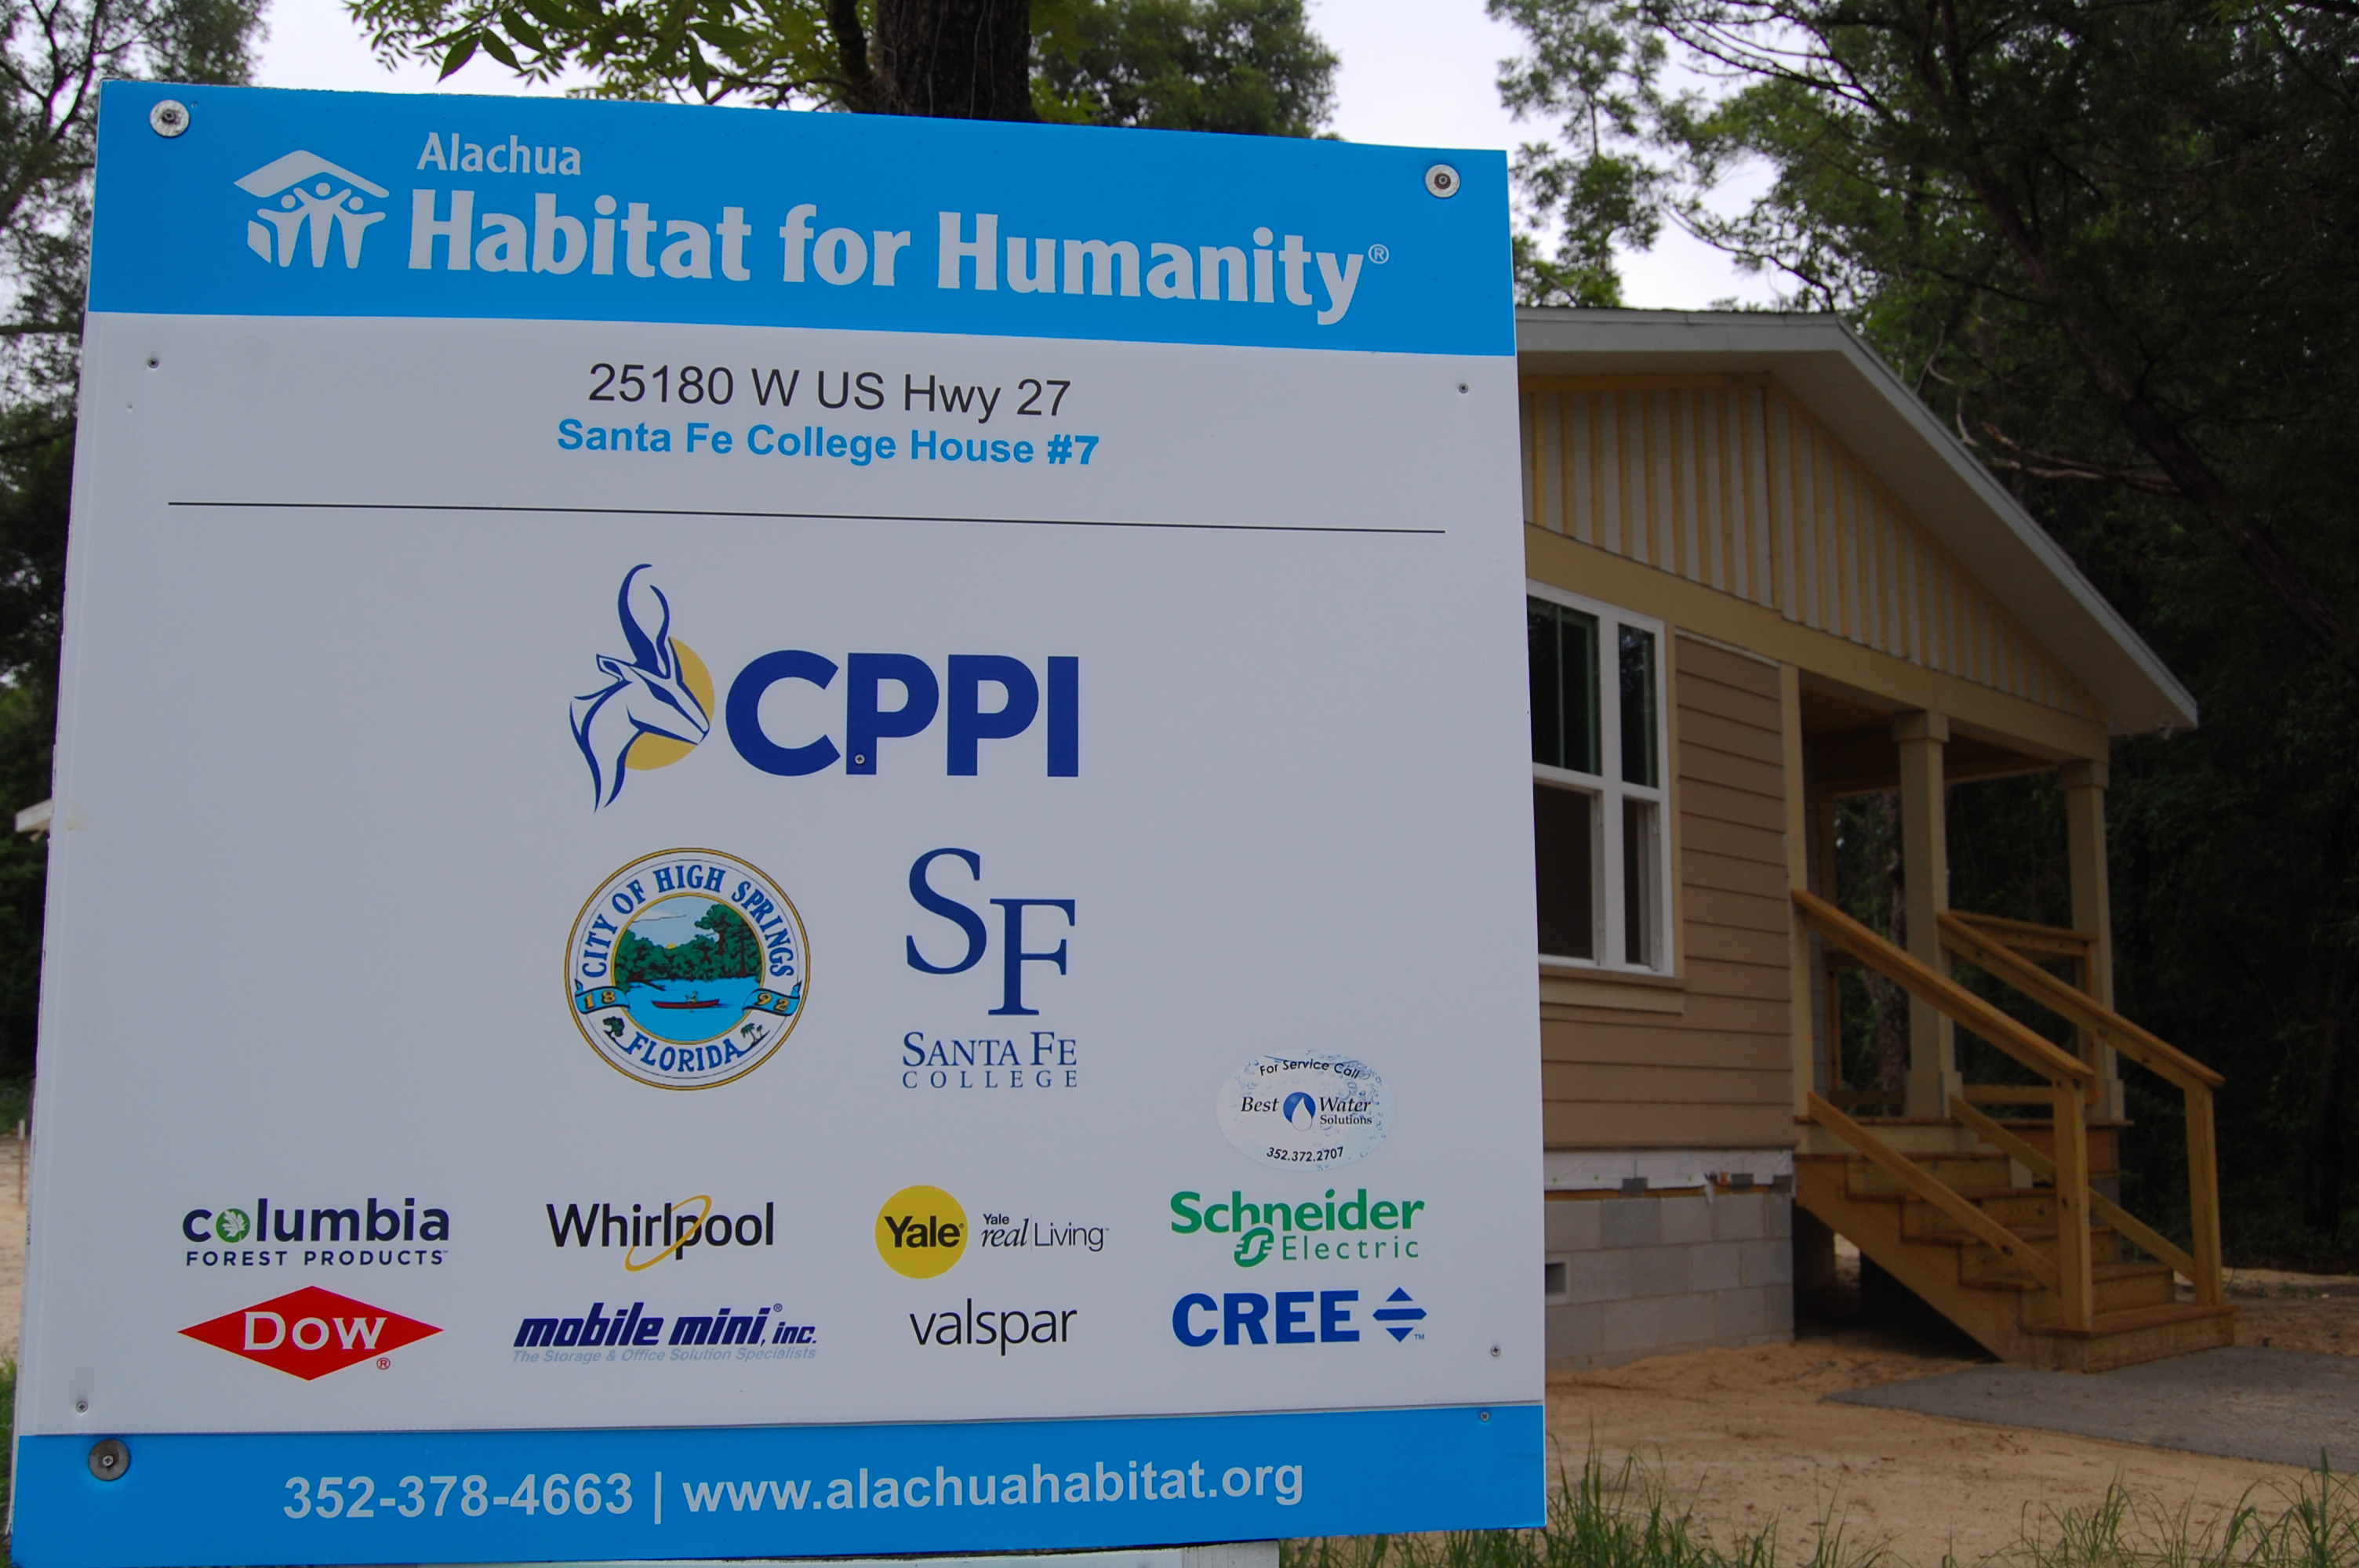 Image of a sign detailing sponsors for Habitat for Humanity.